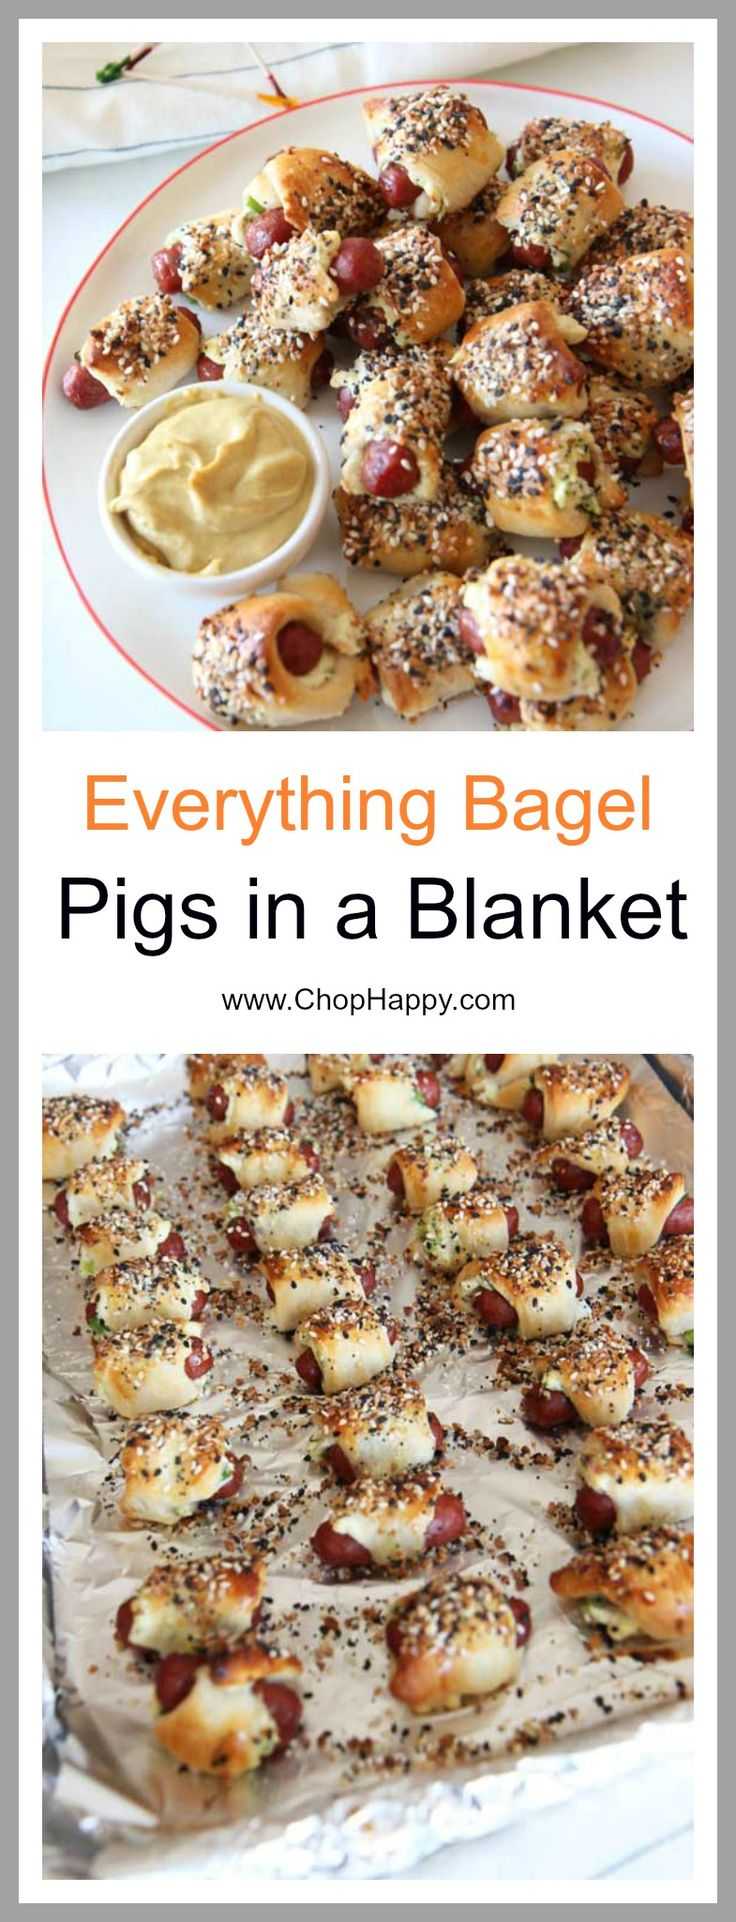 Everything Bagel Pigs in a Blanket Recipe - is crunchy, cheesy, garlicky and salty flavor yum appetizers. Grab crescent dough, everything bagel seasoning, and hot dogs for a super easy recipe. www.ChopHappy.com